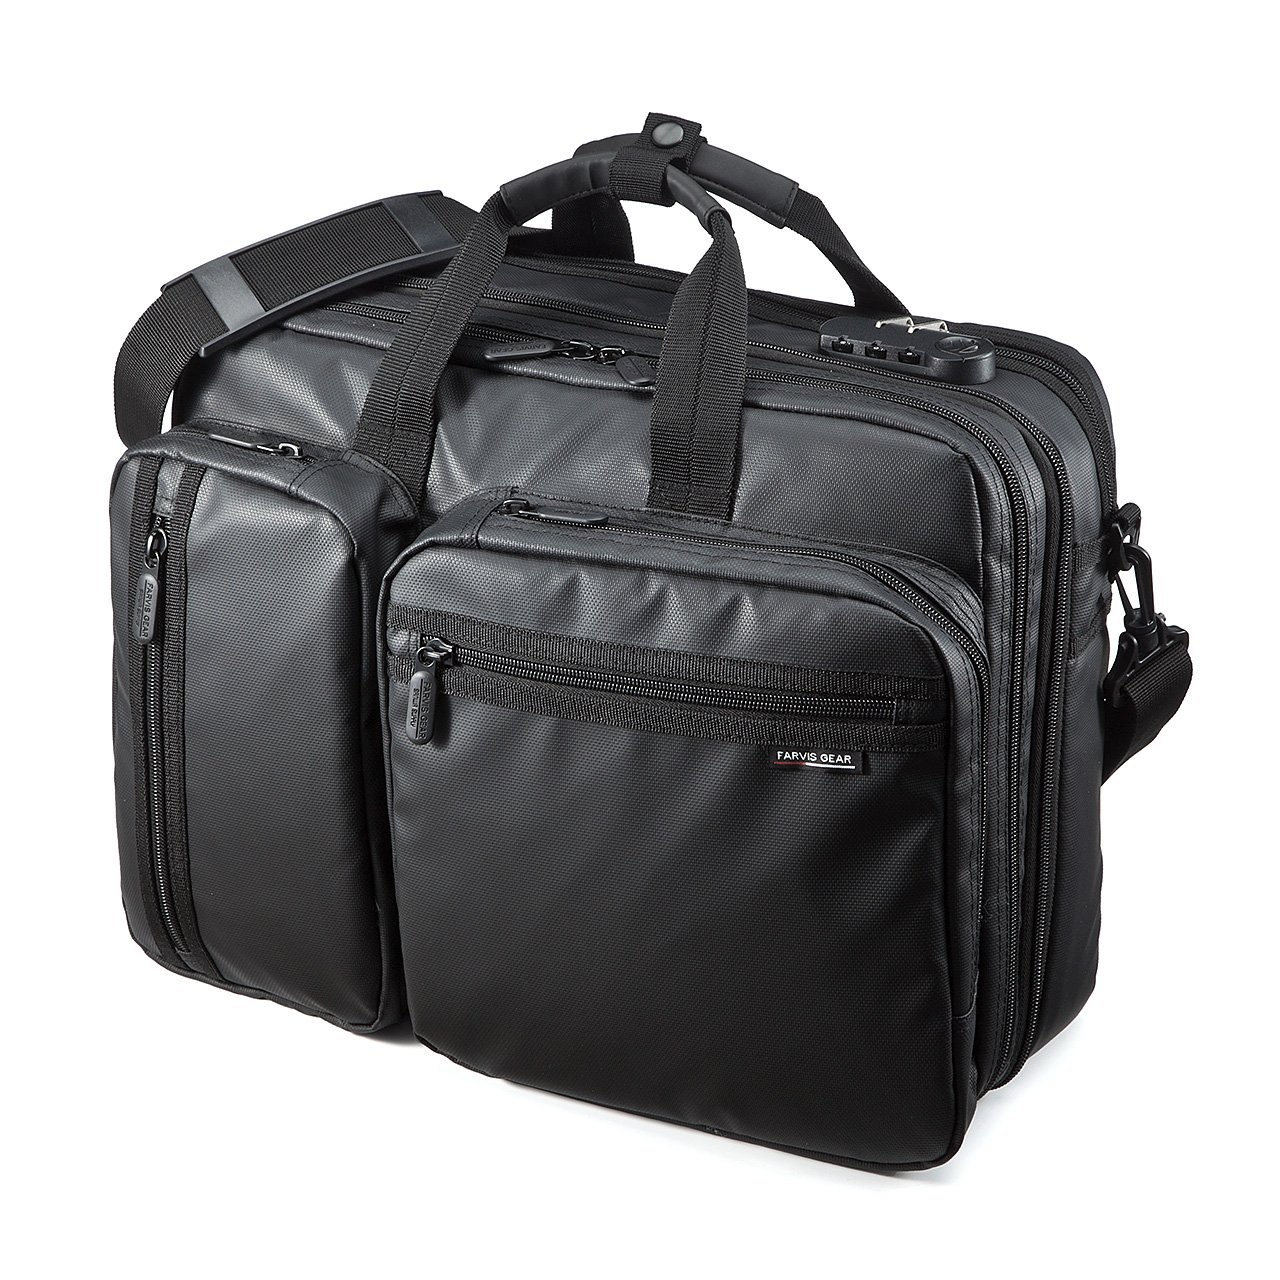 well-wreapped SANWA 3-in-1 Laptop Briefcase, 15.6 inch Expandable Business Bag, Water Resistance, Hand/Shoulder/Backpack, For Macbook Dell Hp Acer Asus Lenovo, For Men/Women, Business Travel, Black, BAG048WP